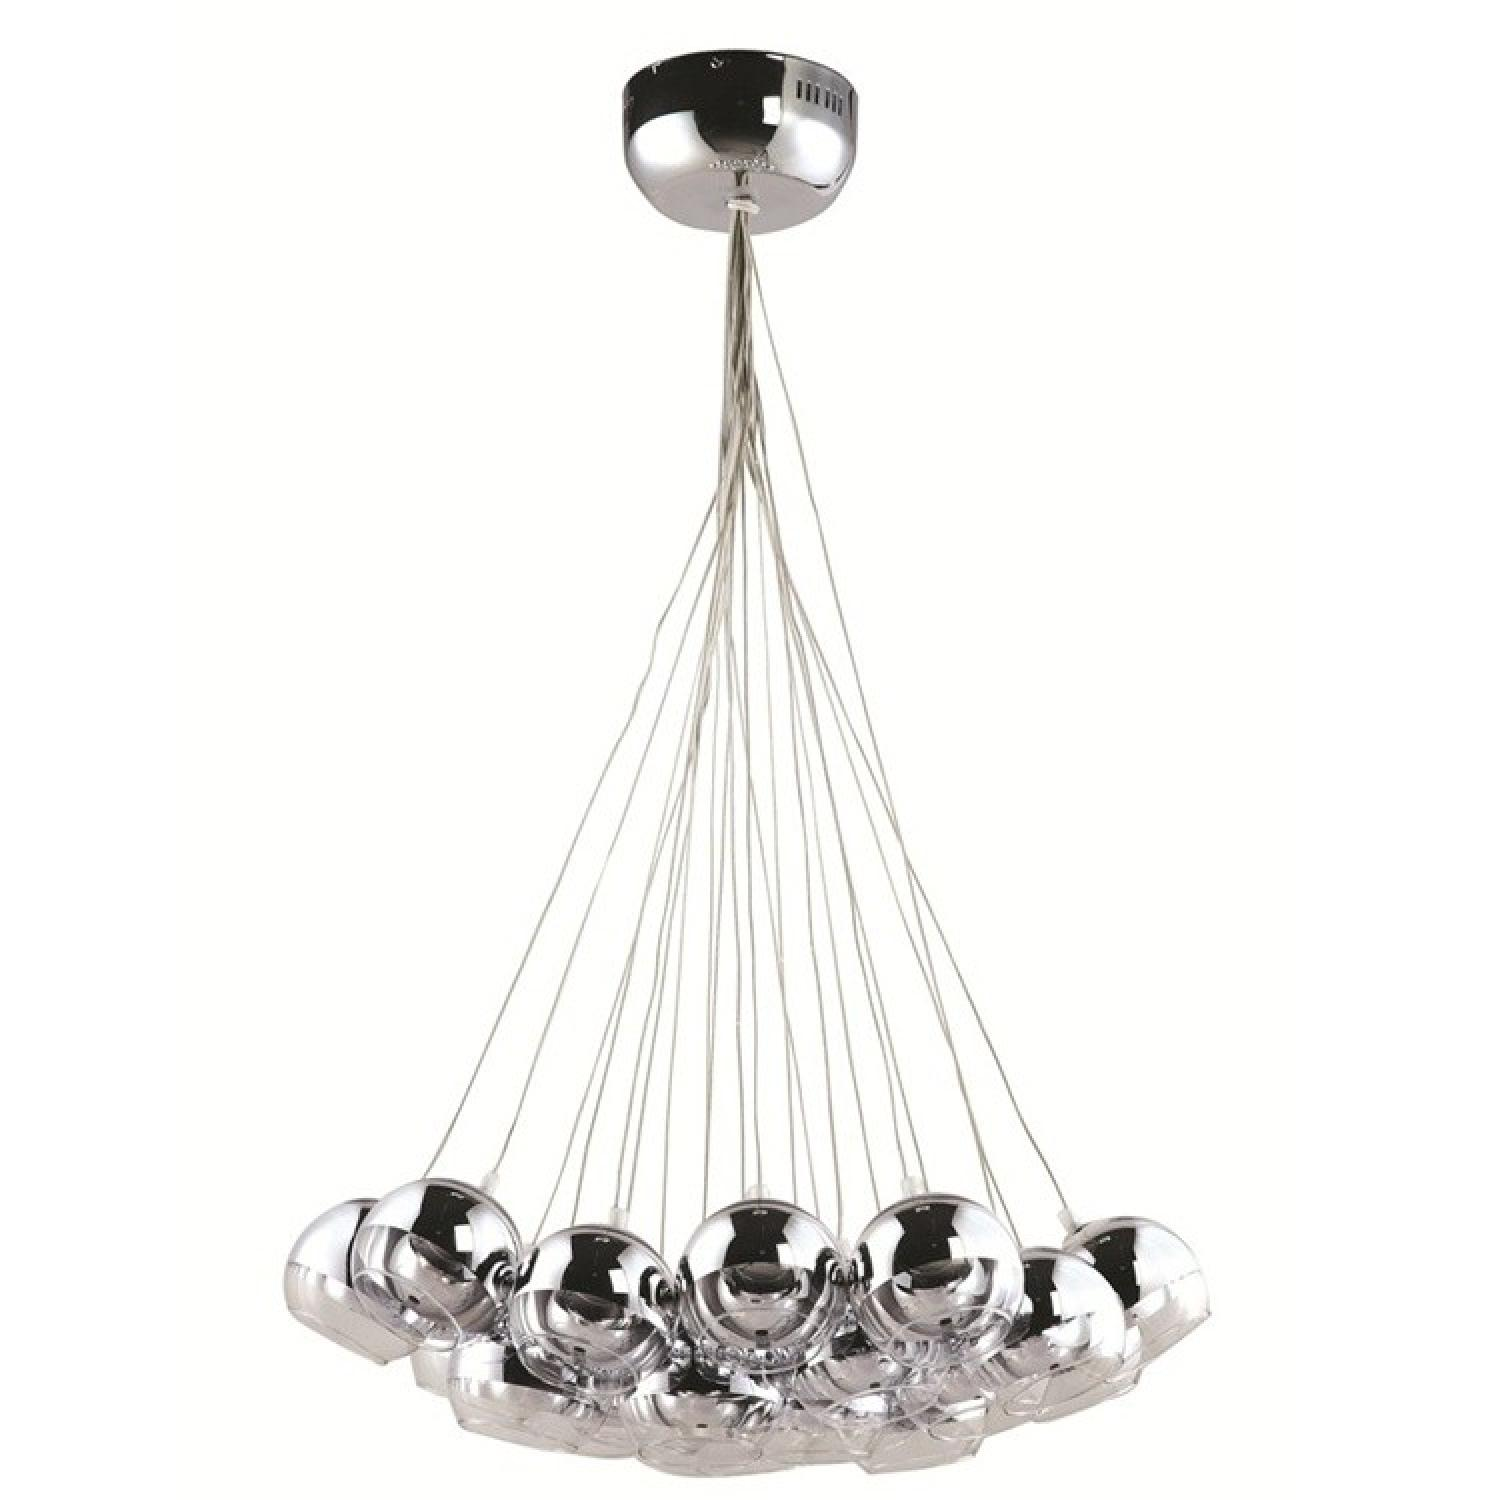 Modern Cup Hanging Chandelier in Silver Finish w/ Bulbs Included